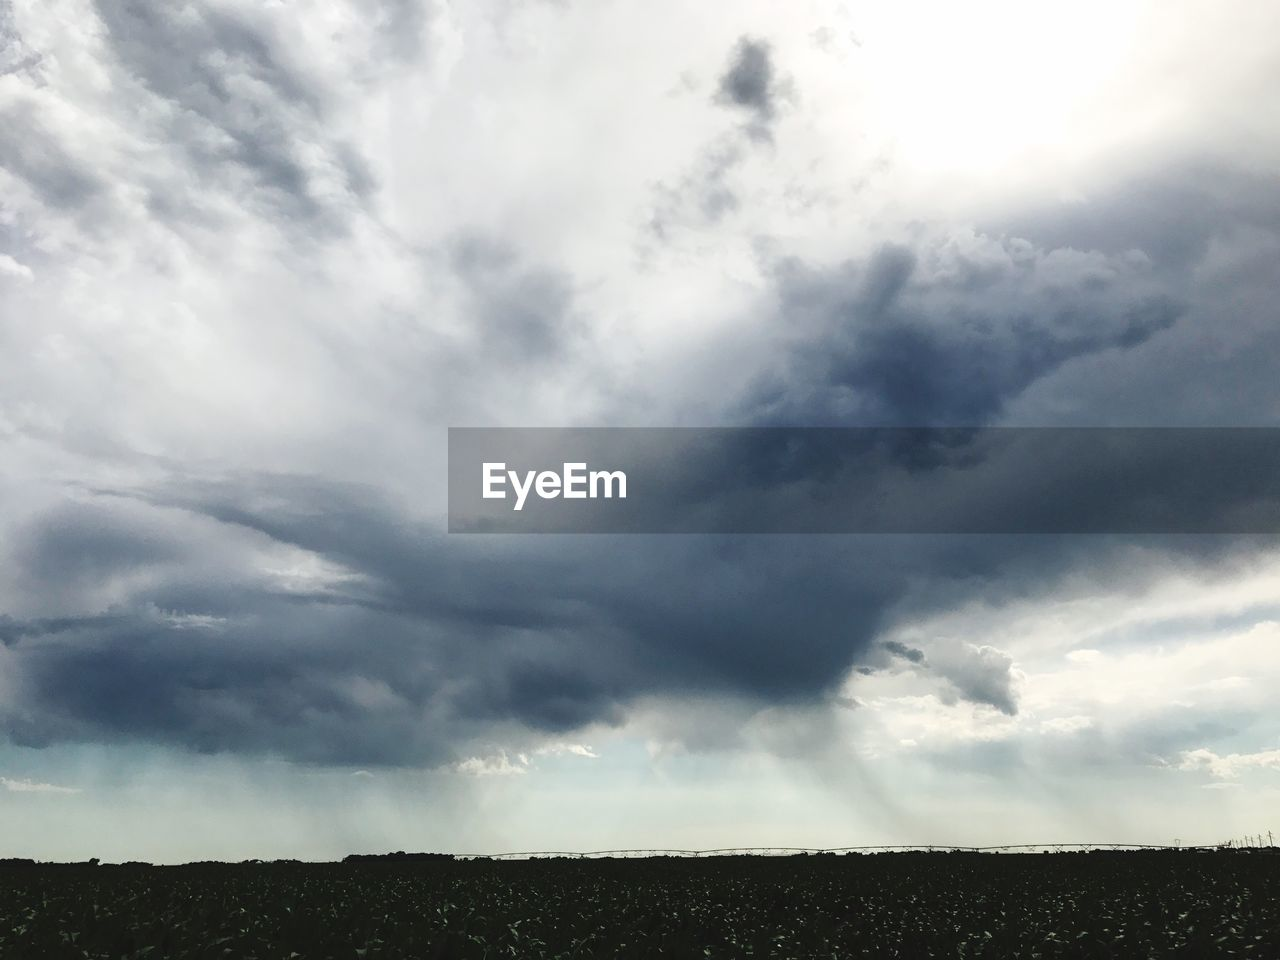 sky, cloud - sky, nature, no people, outdoors, scenics, beauty in nature, day, tranquility, low angle view, landscape, storm cloud